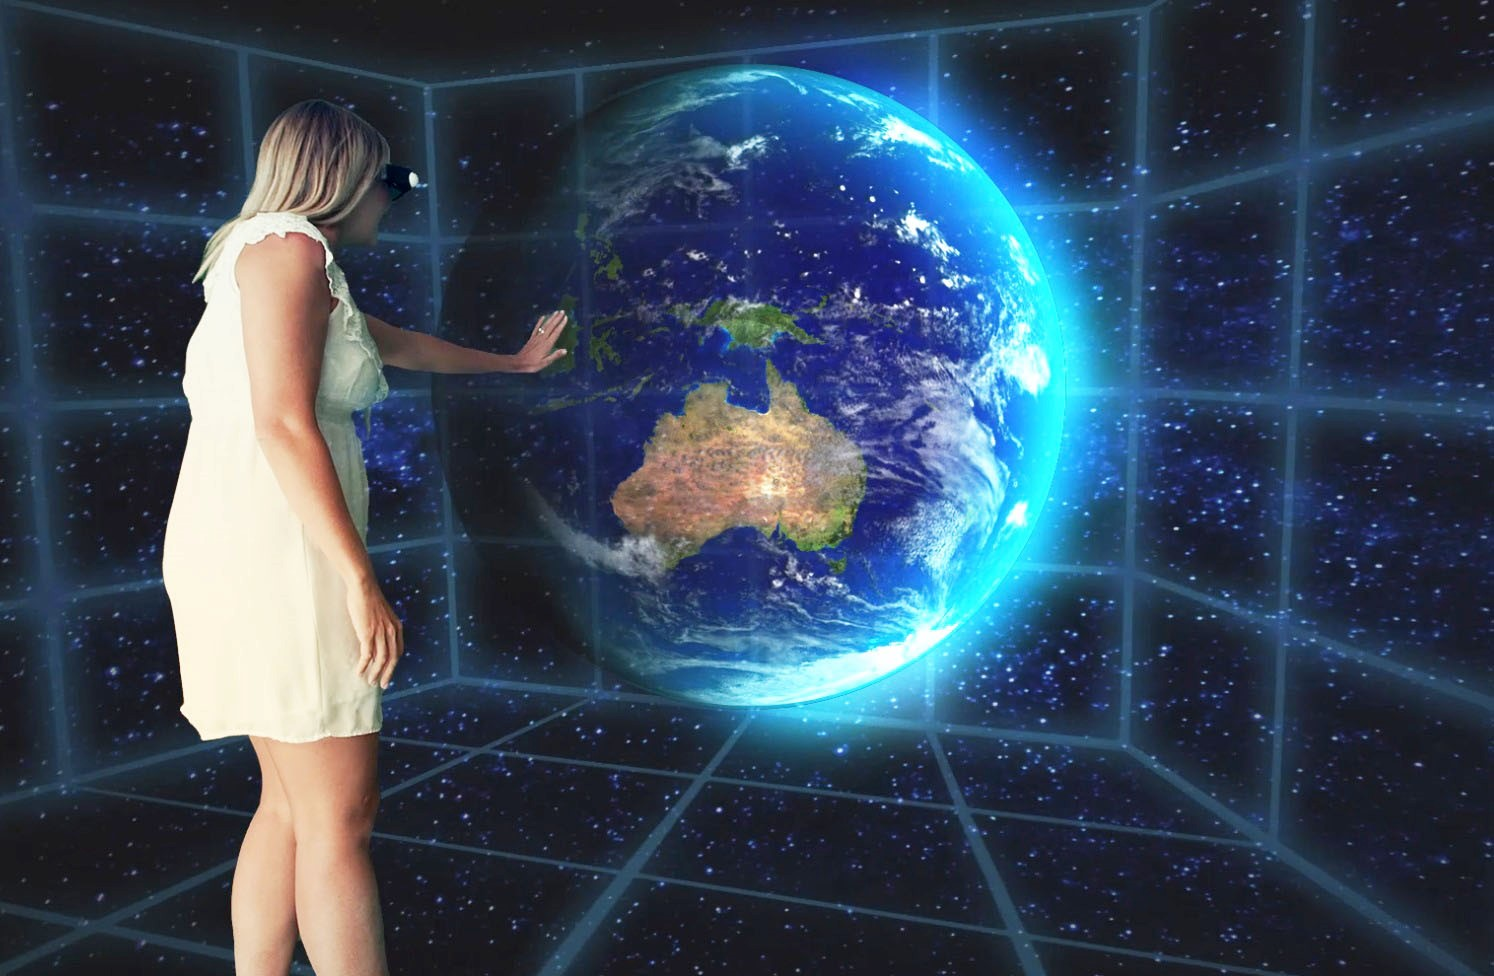 Holograms in education are very powerful and allow your users to explore the world like they otherwise couldn't